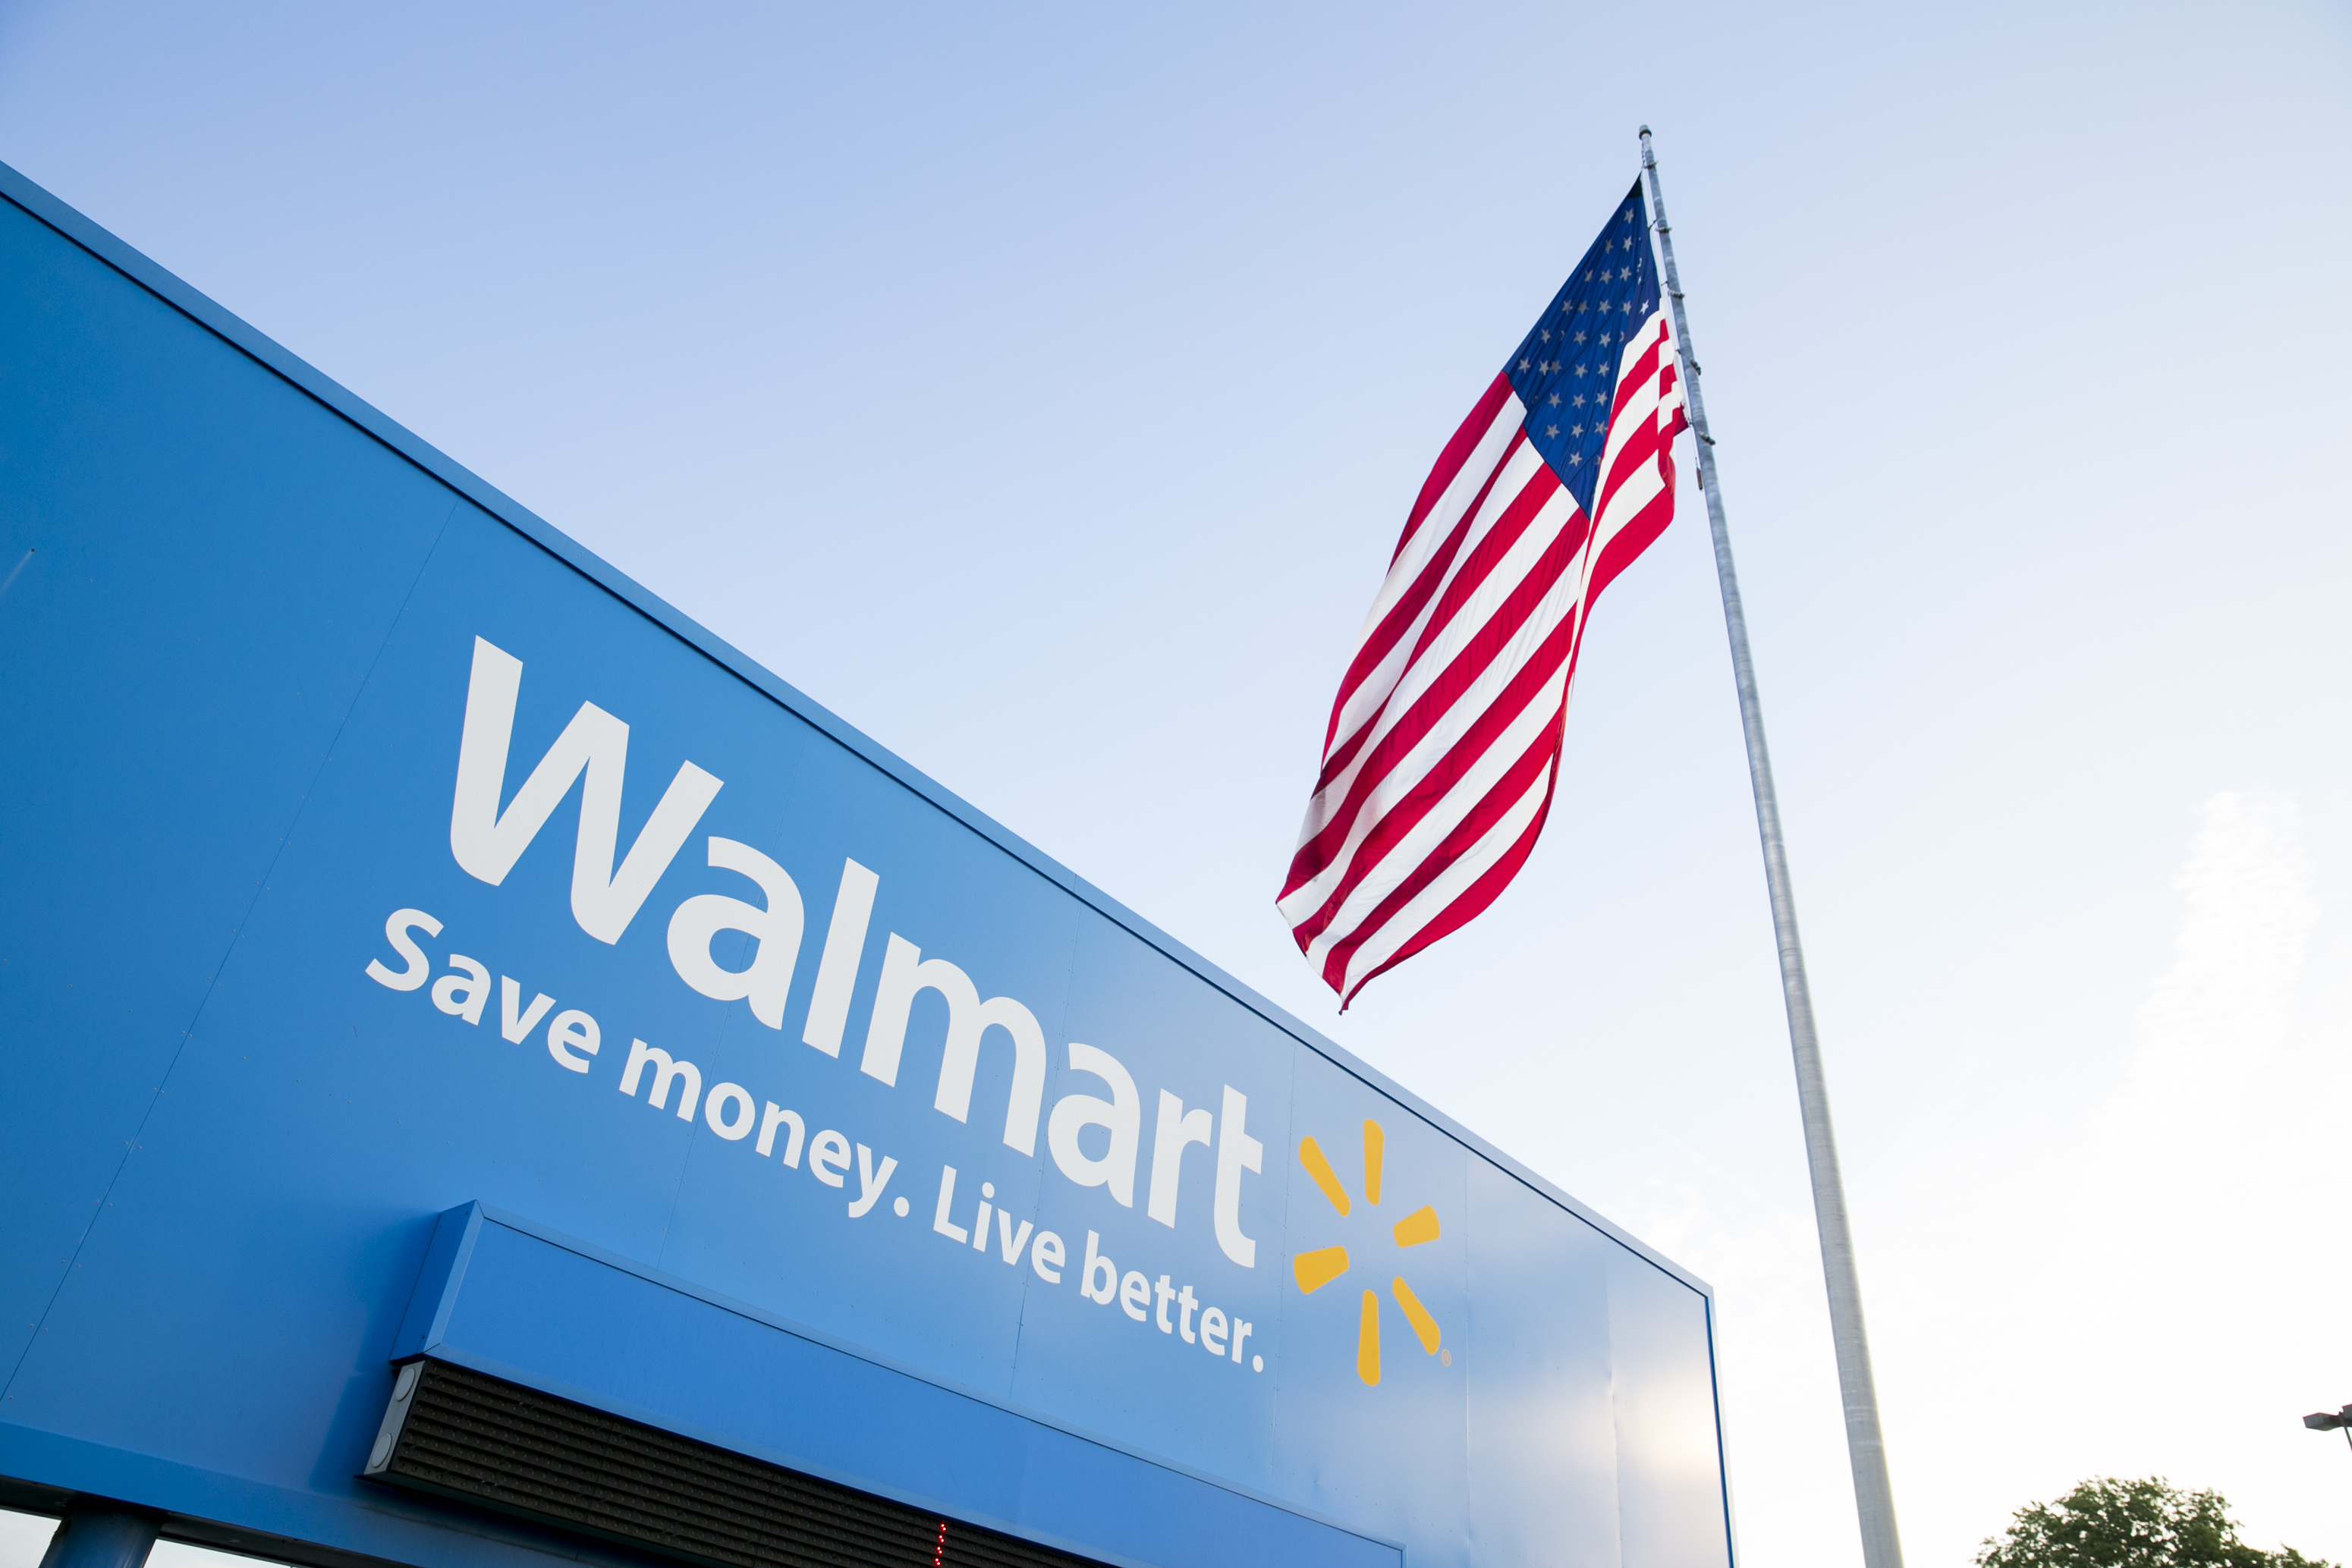 A logo sign outside of the Walmart headquarters, known as the Home Office, in Bentonville, Arkansas on August 18, 2015.